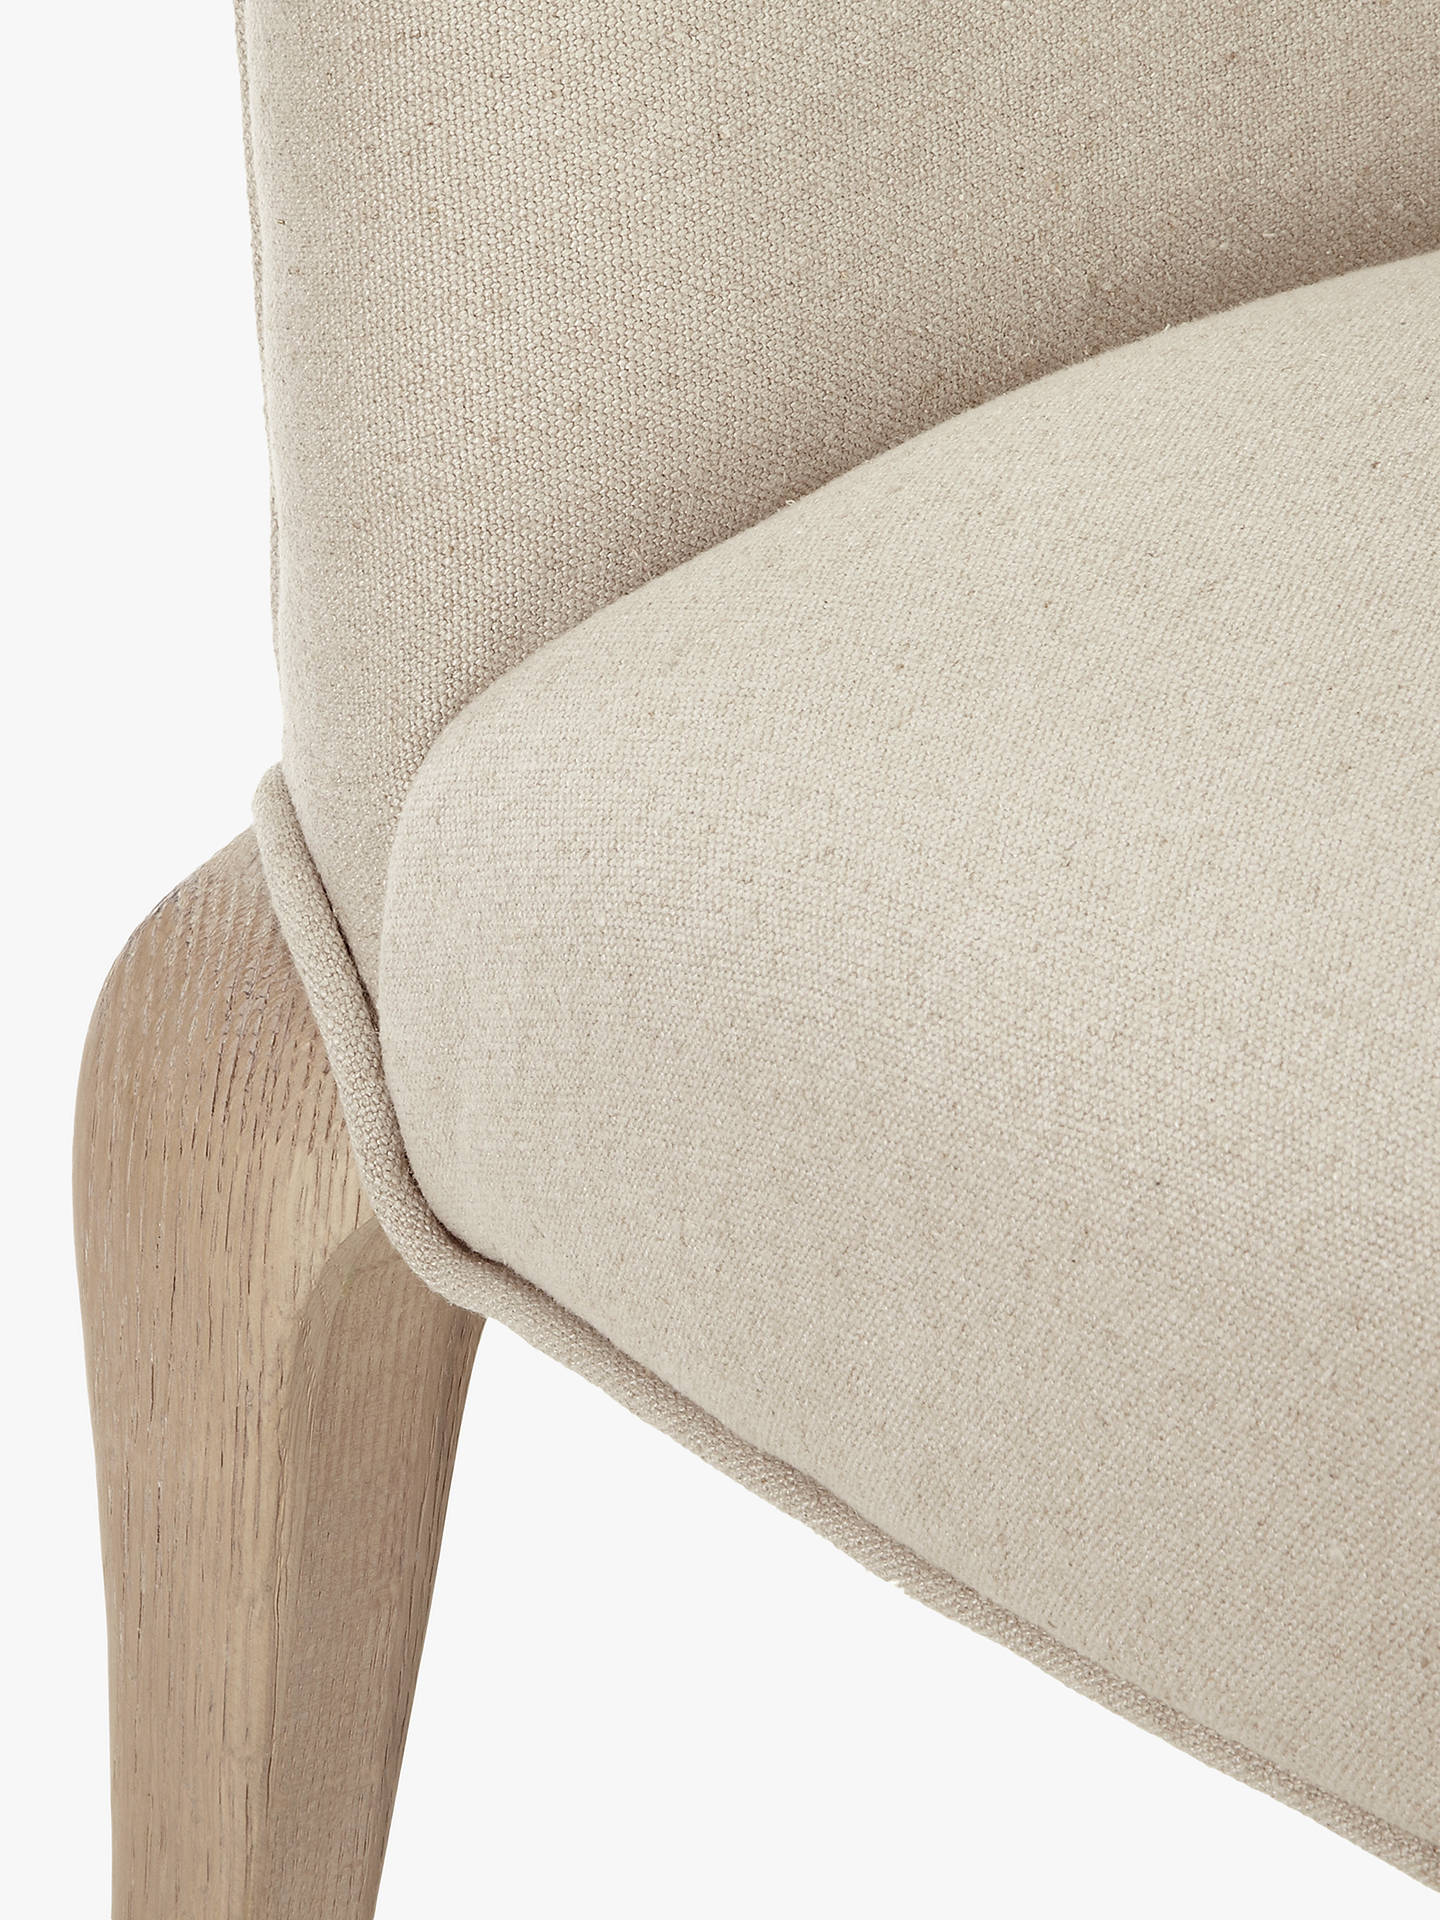 Buy John Lewis & Partners Etienne Upholstered Chair Online at johnlewis.com